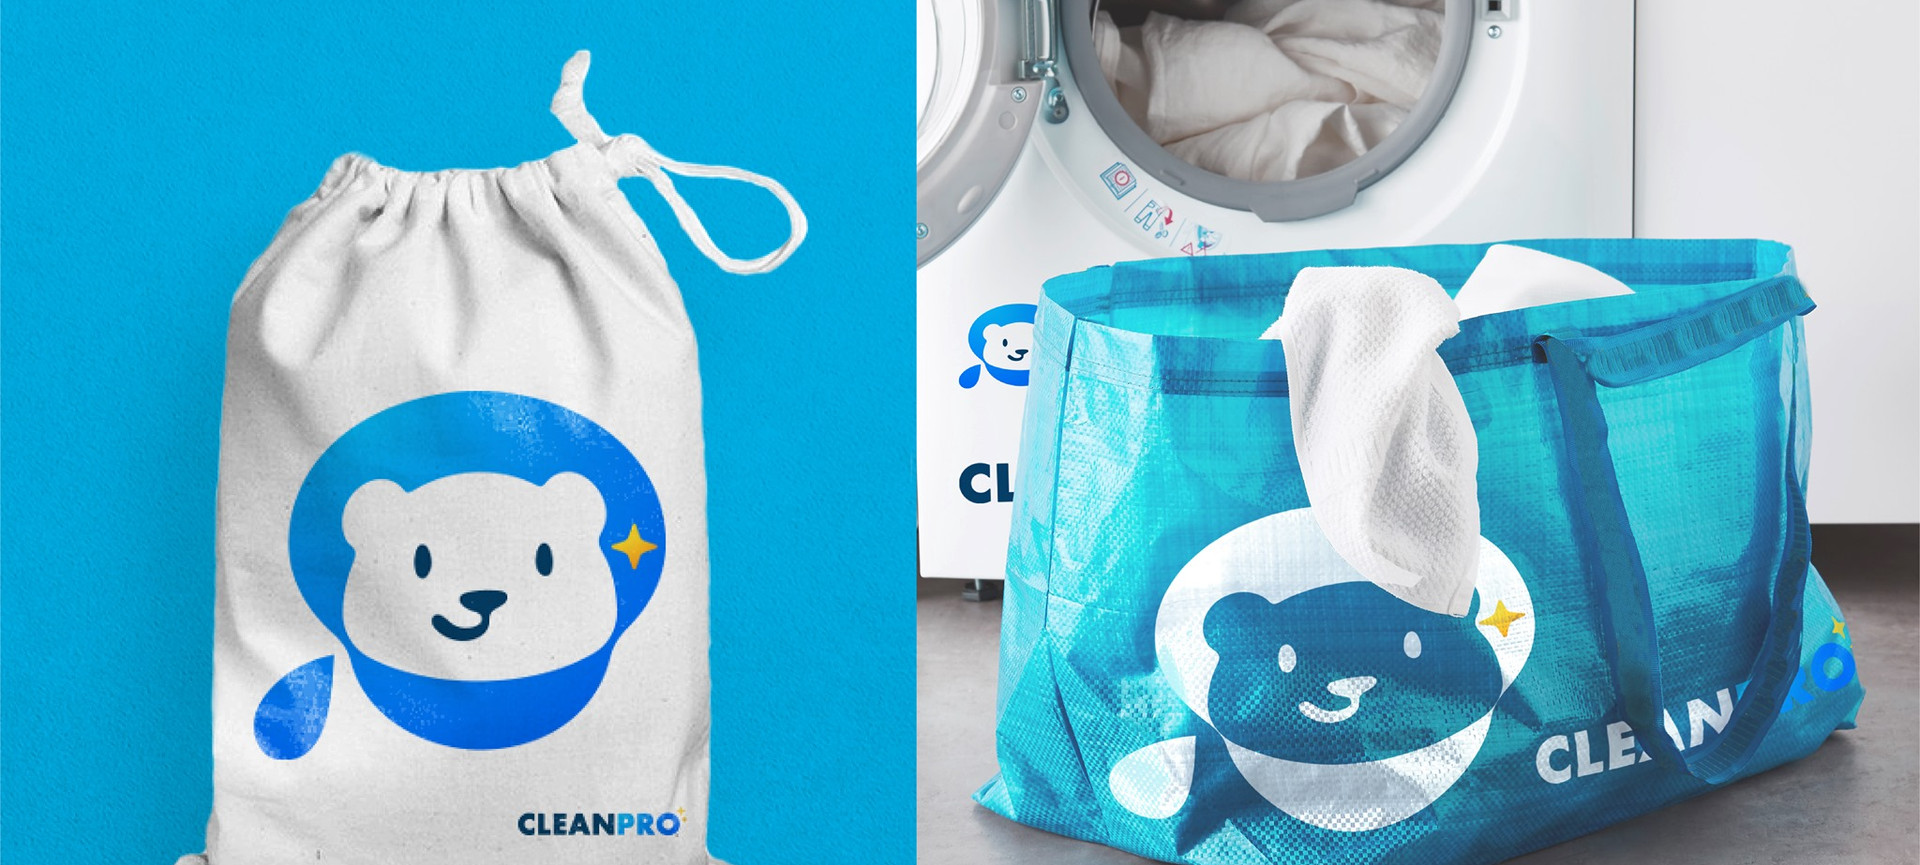 Laundry Bag Mock Up